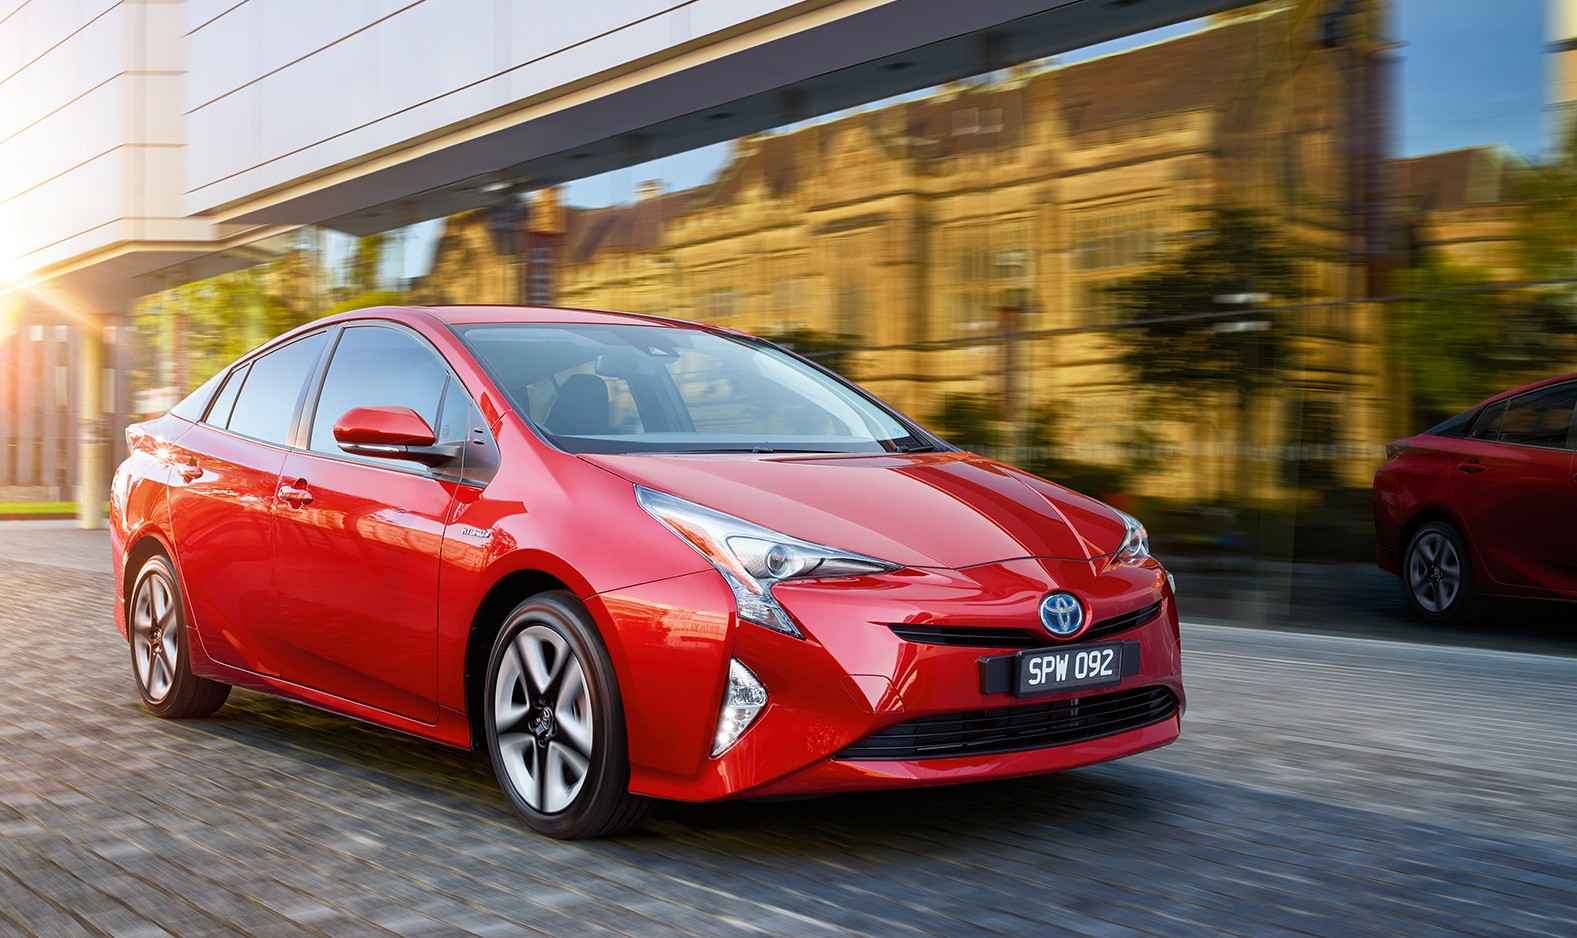 10 things you should know before buying Toyota Prius